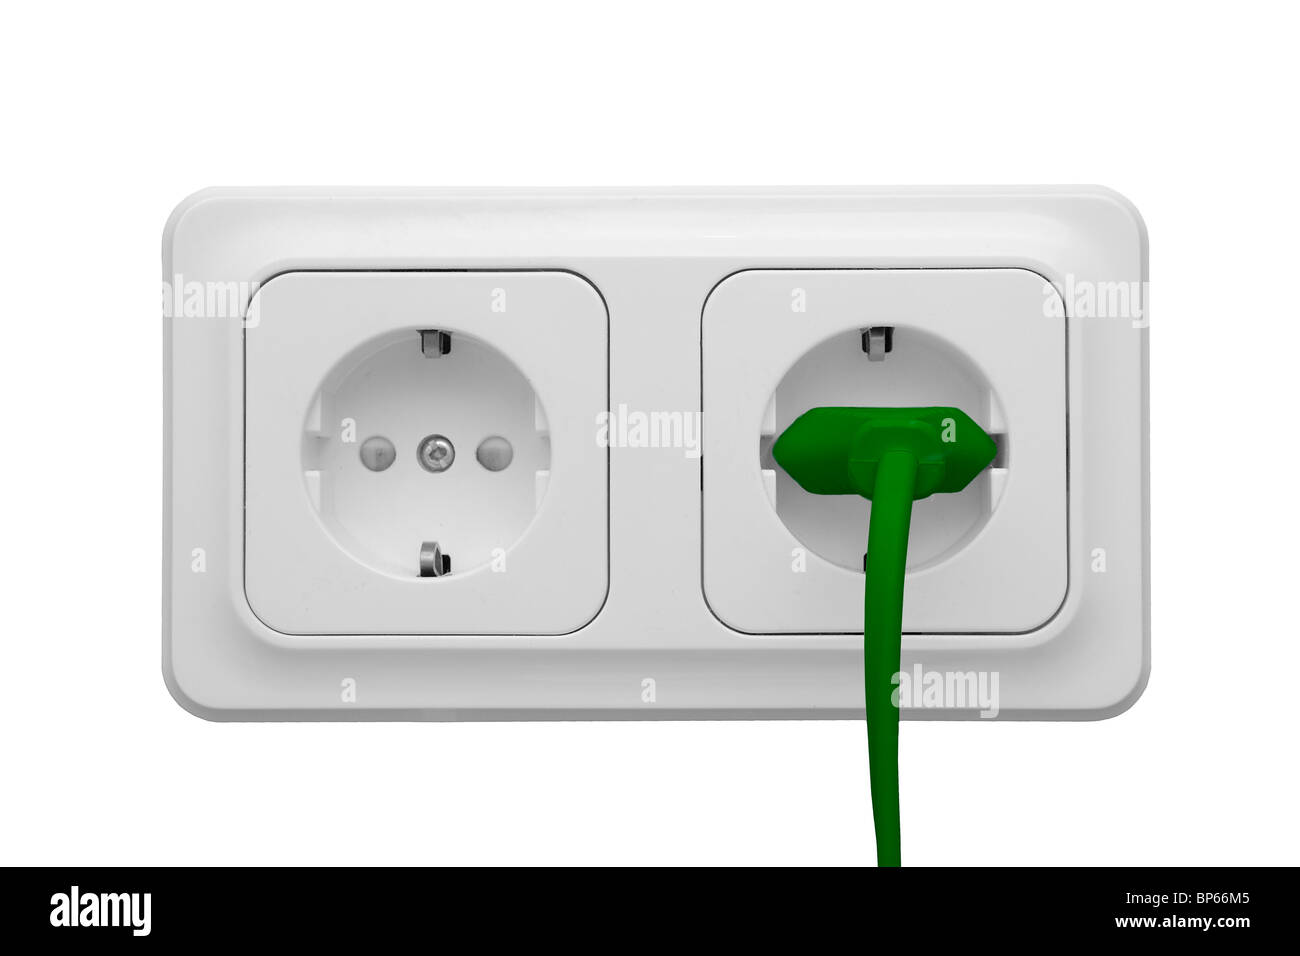 Outlet with power cord isolated on white background - Stock Image